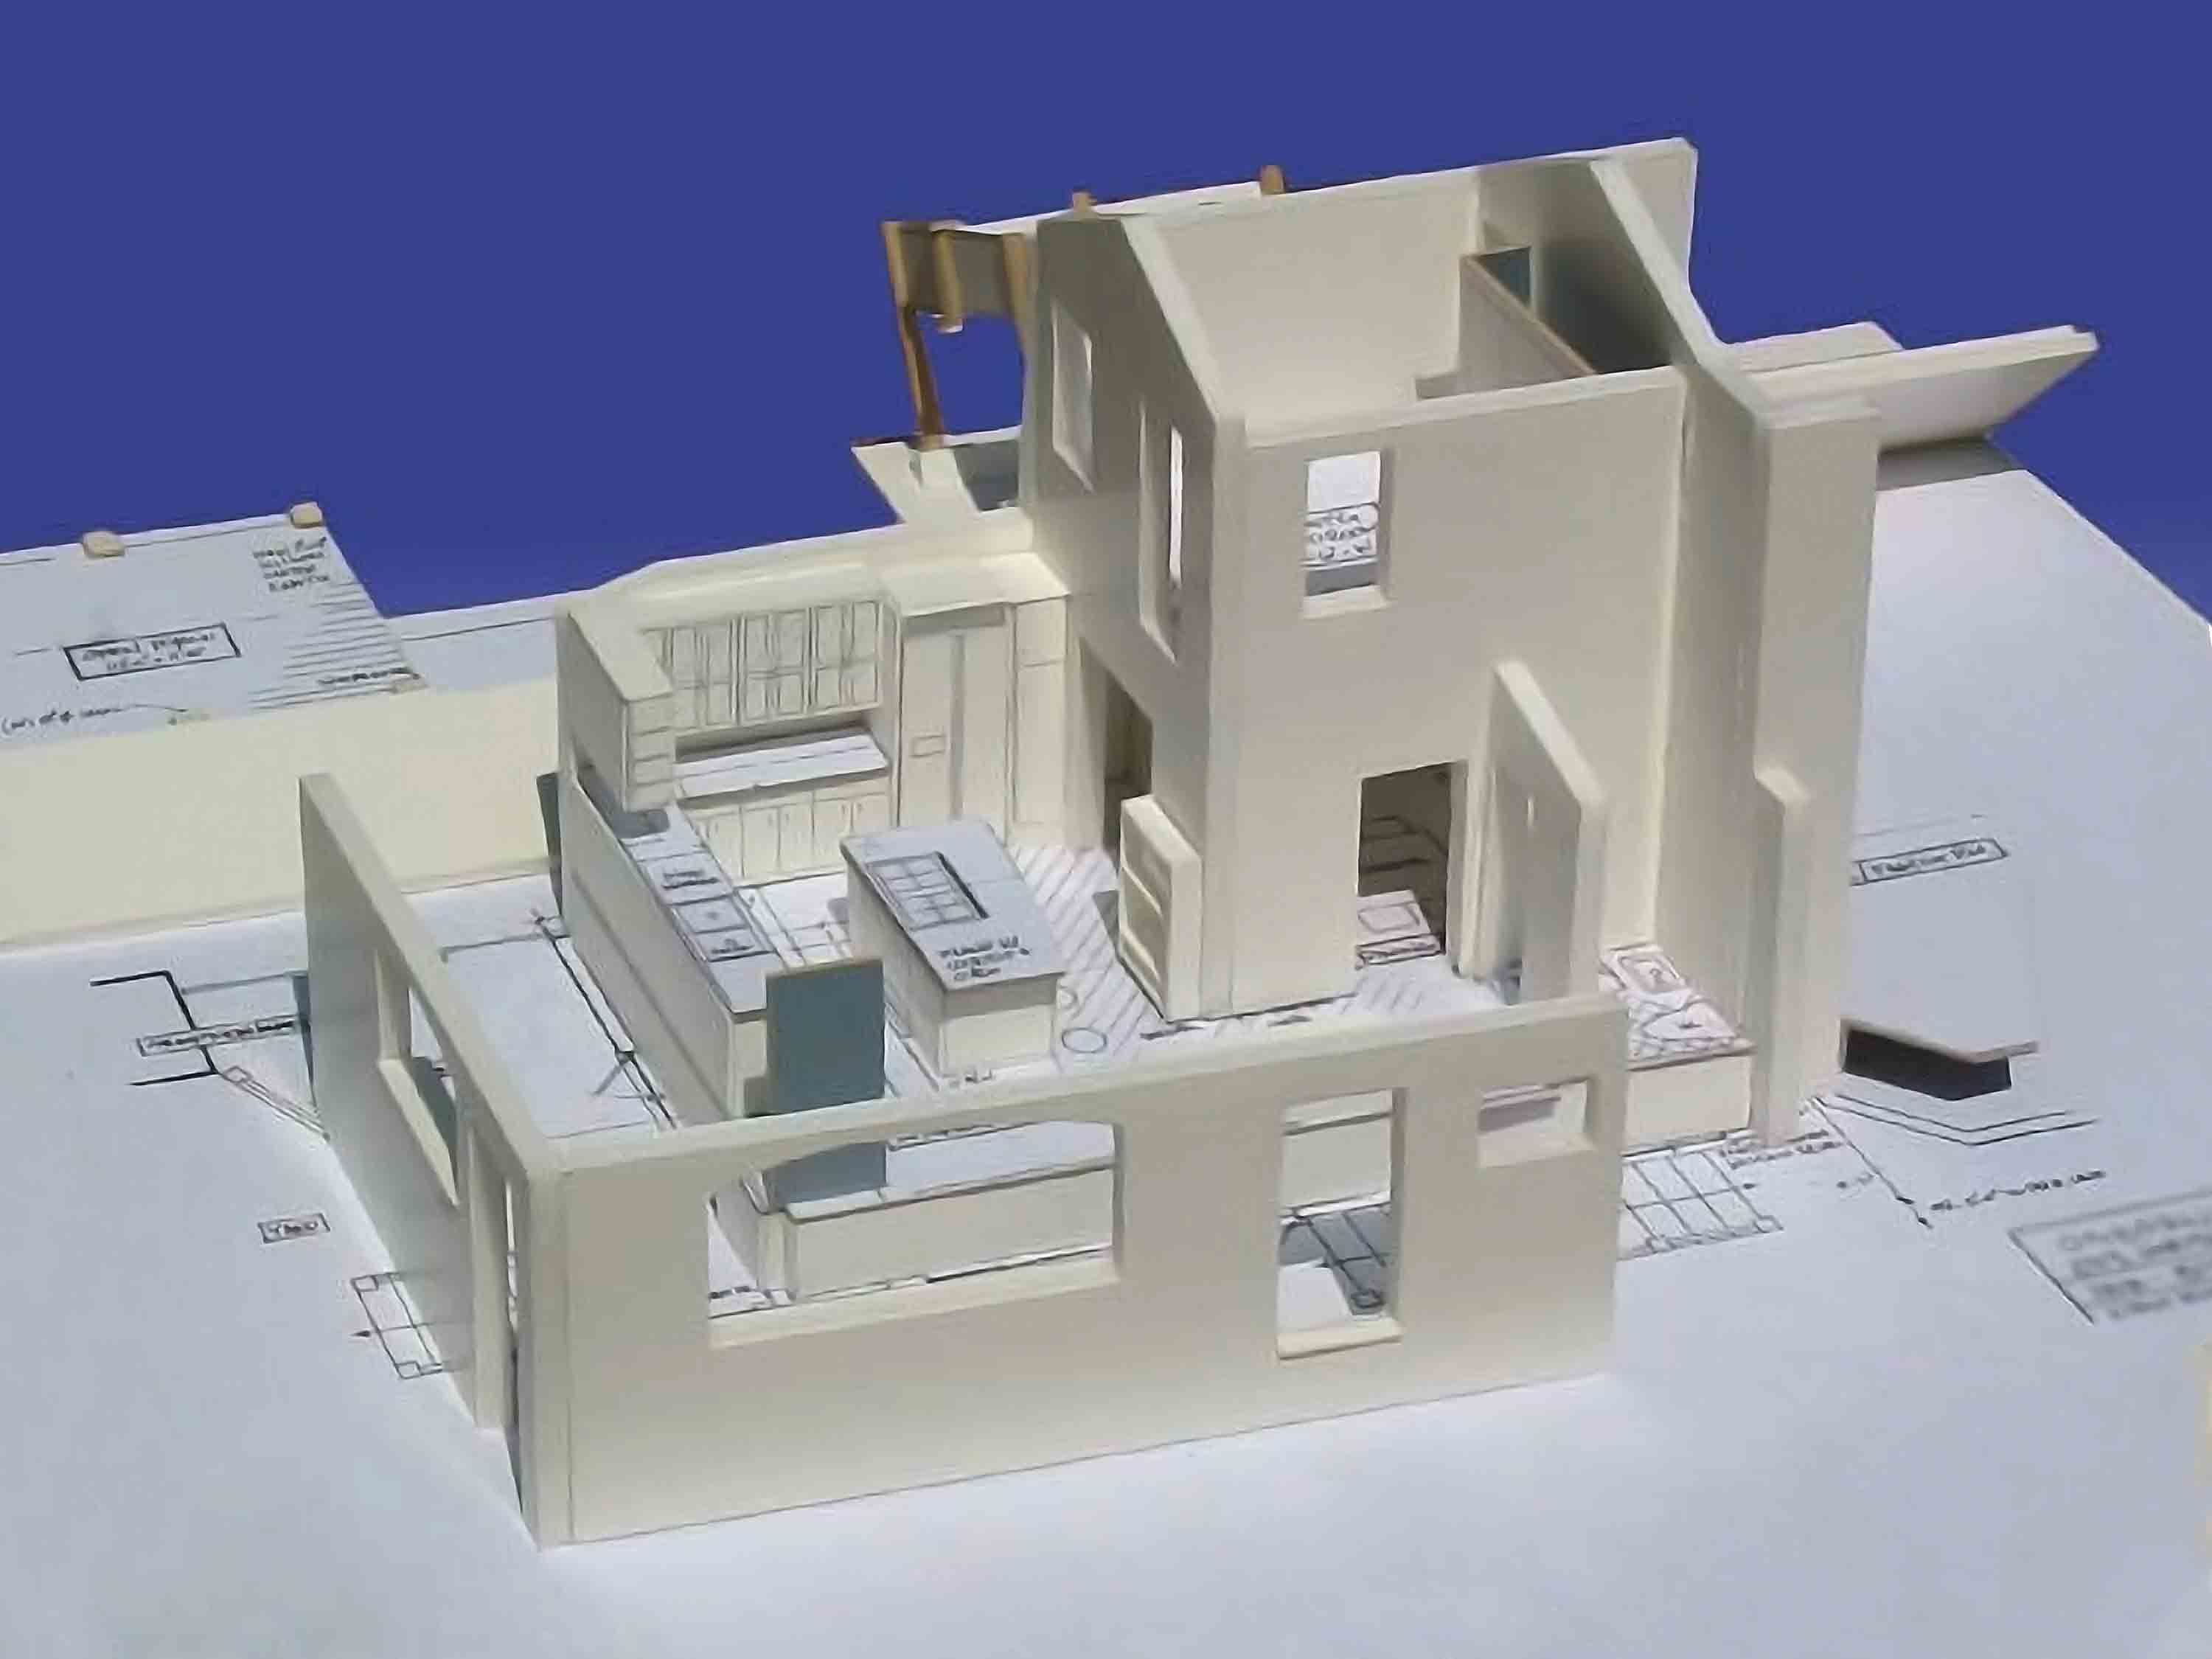 Kitchen and 2nd Floor Addition model study